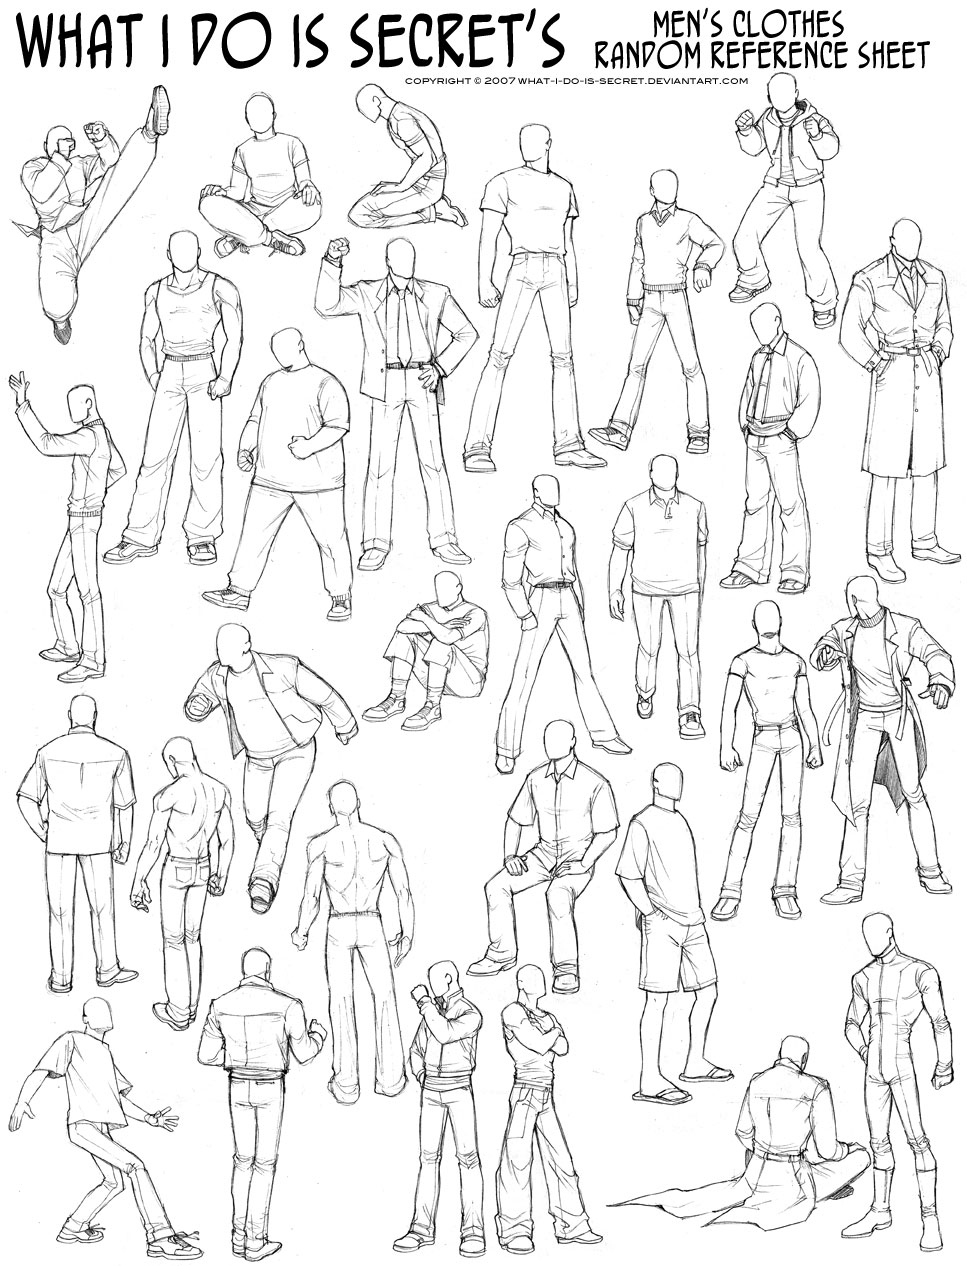 Reference: Men's clothing